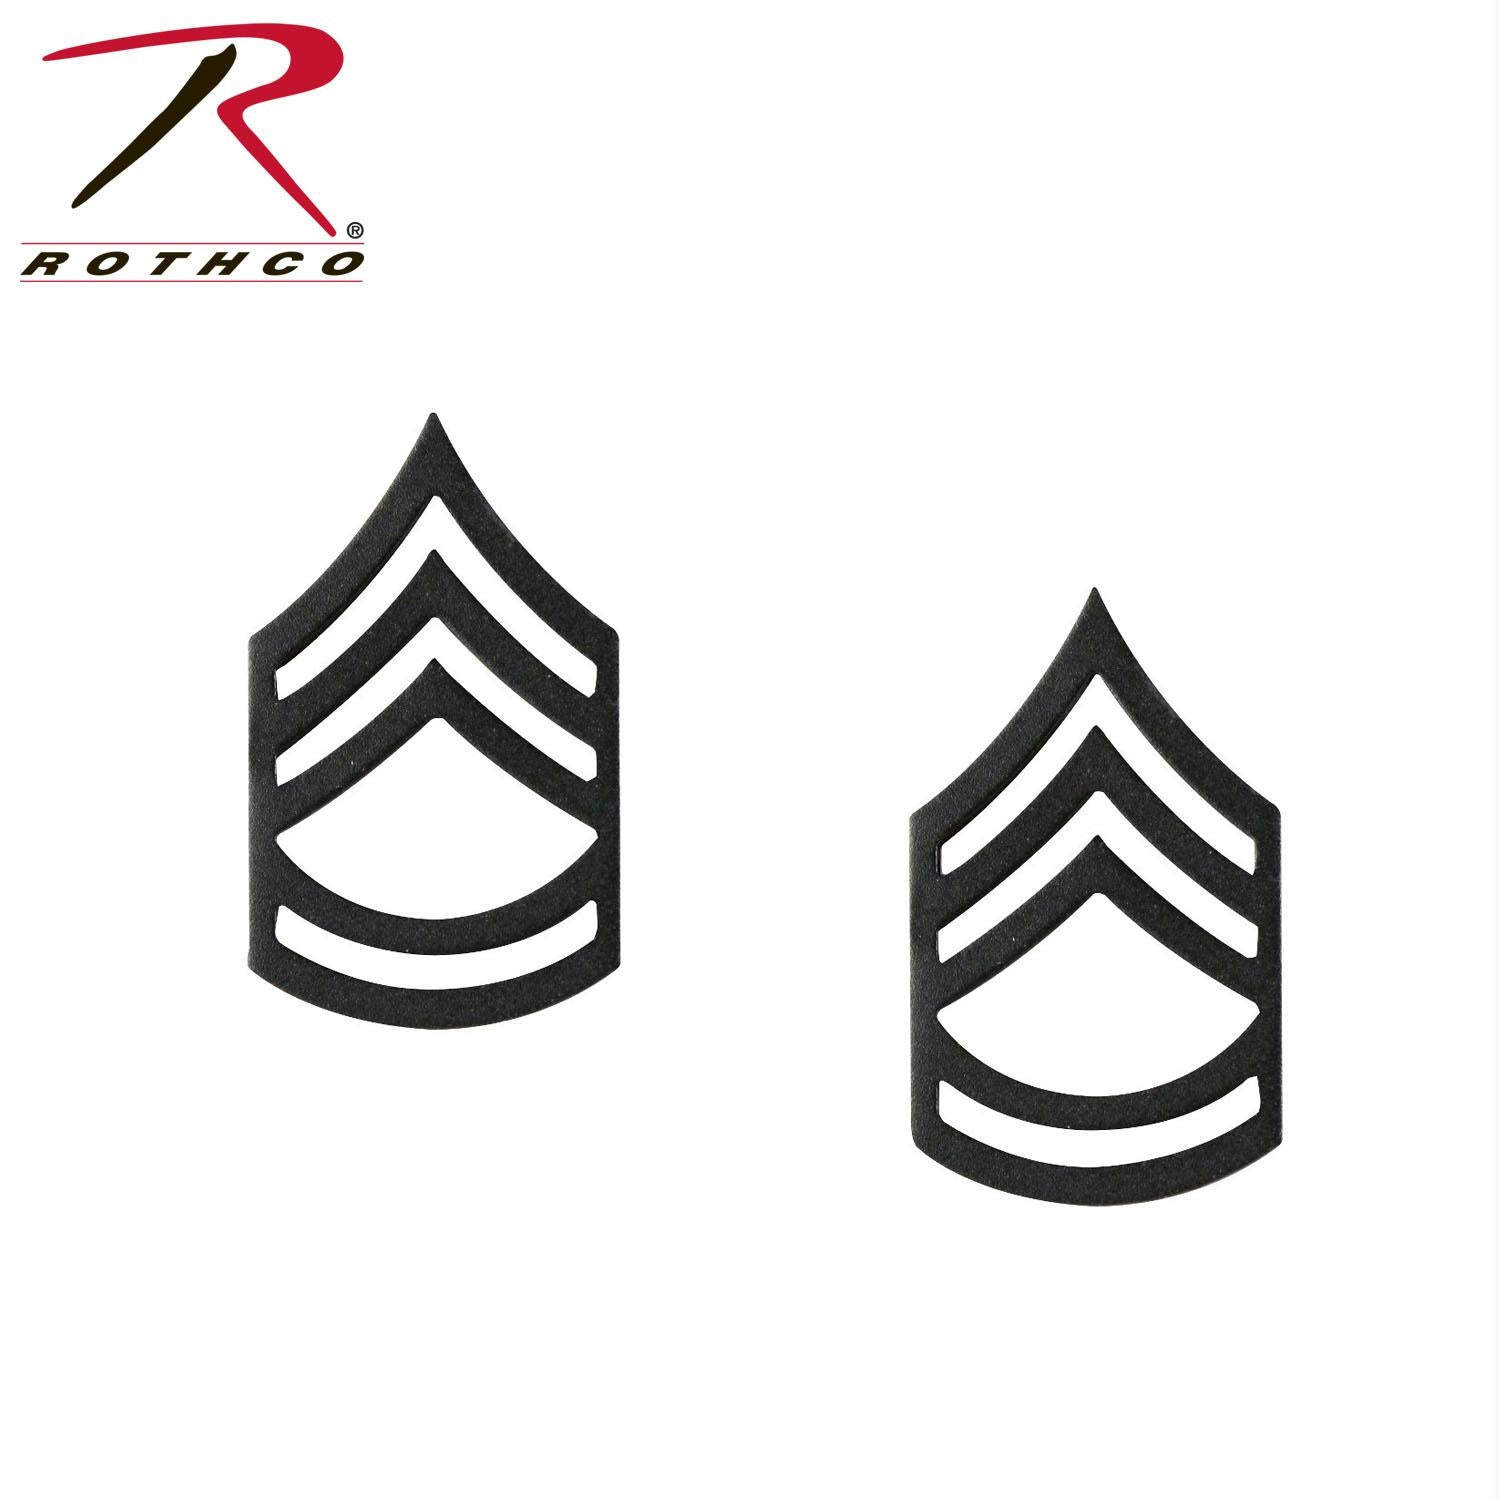 Rothco Sergeant First Class Polished Insignia Pin - Subdued